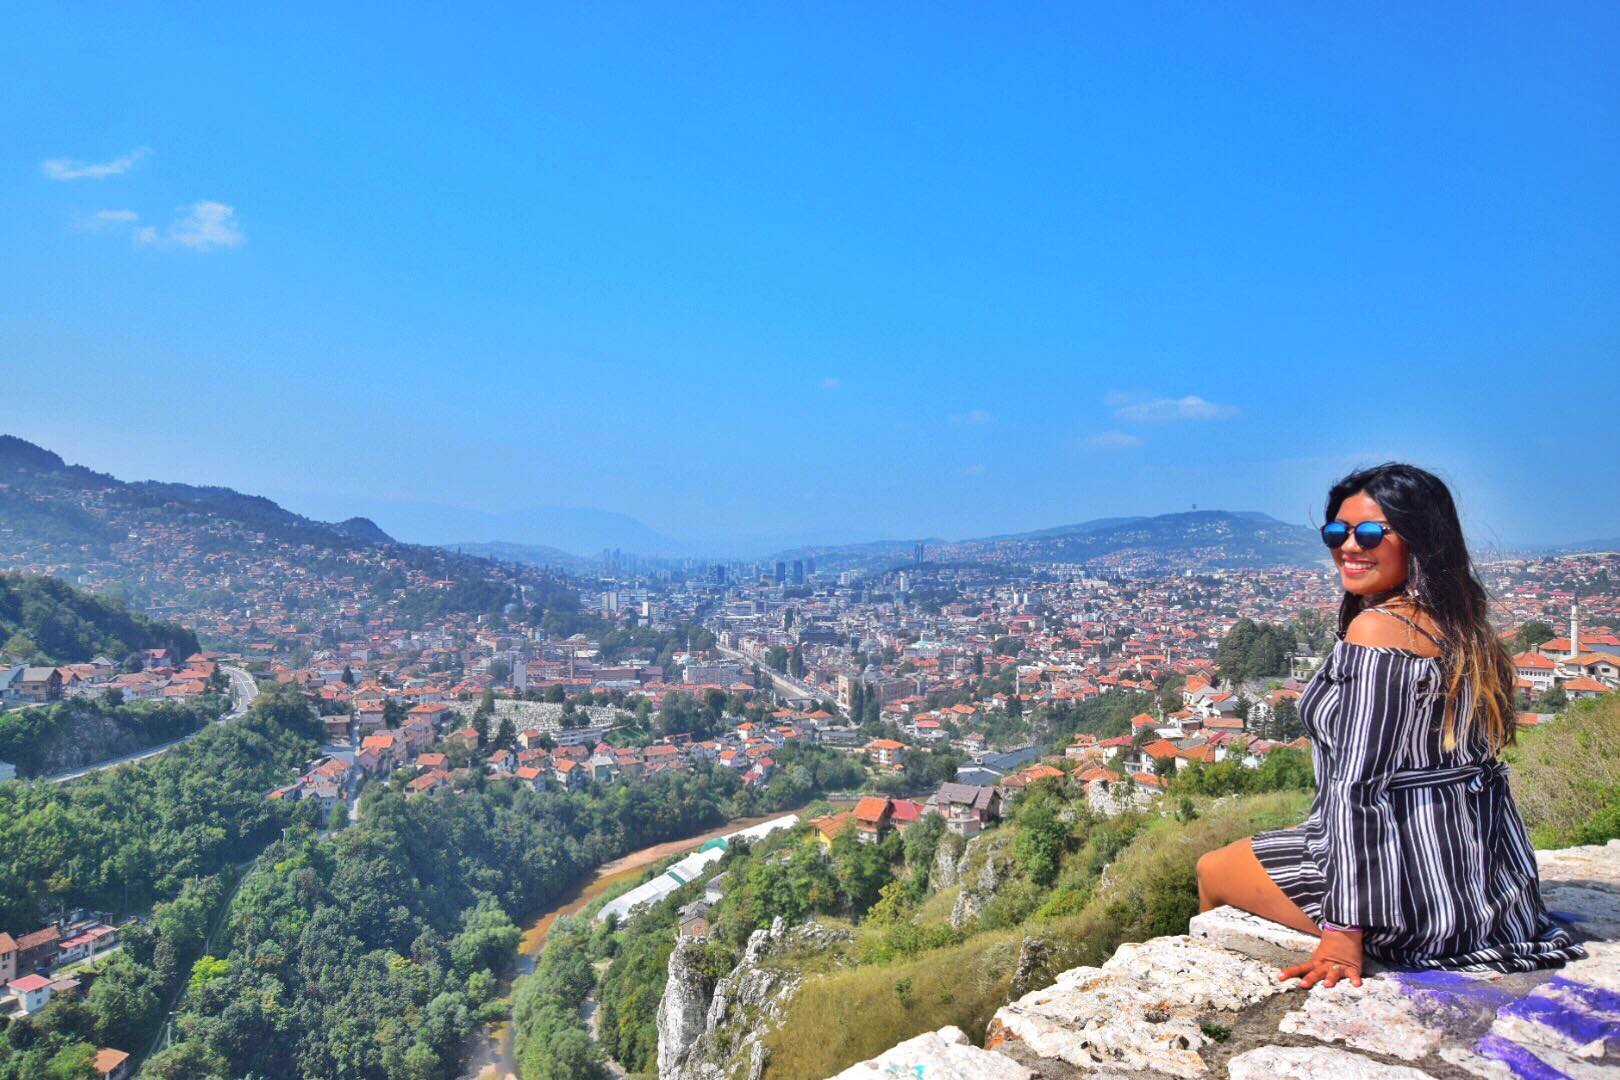 Survival guide for Filipina traveling first time solo abroad